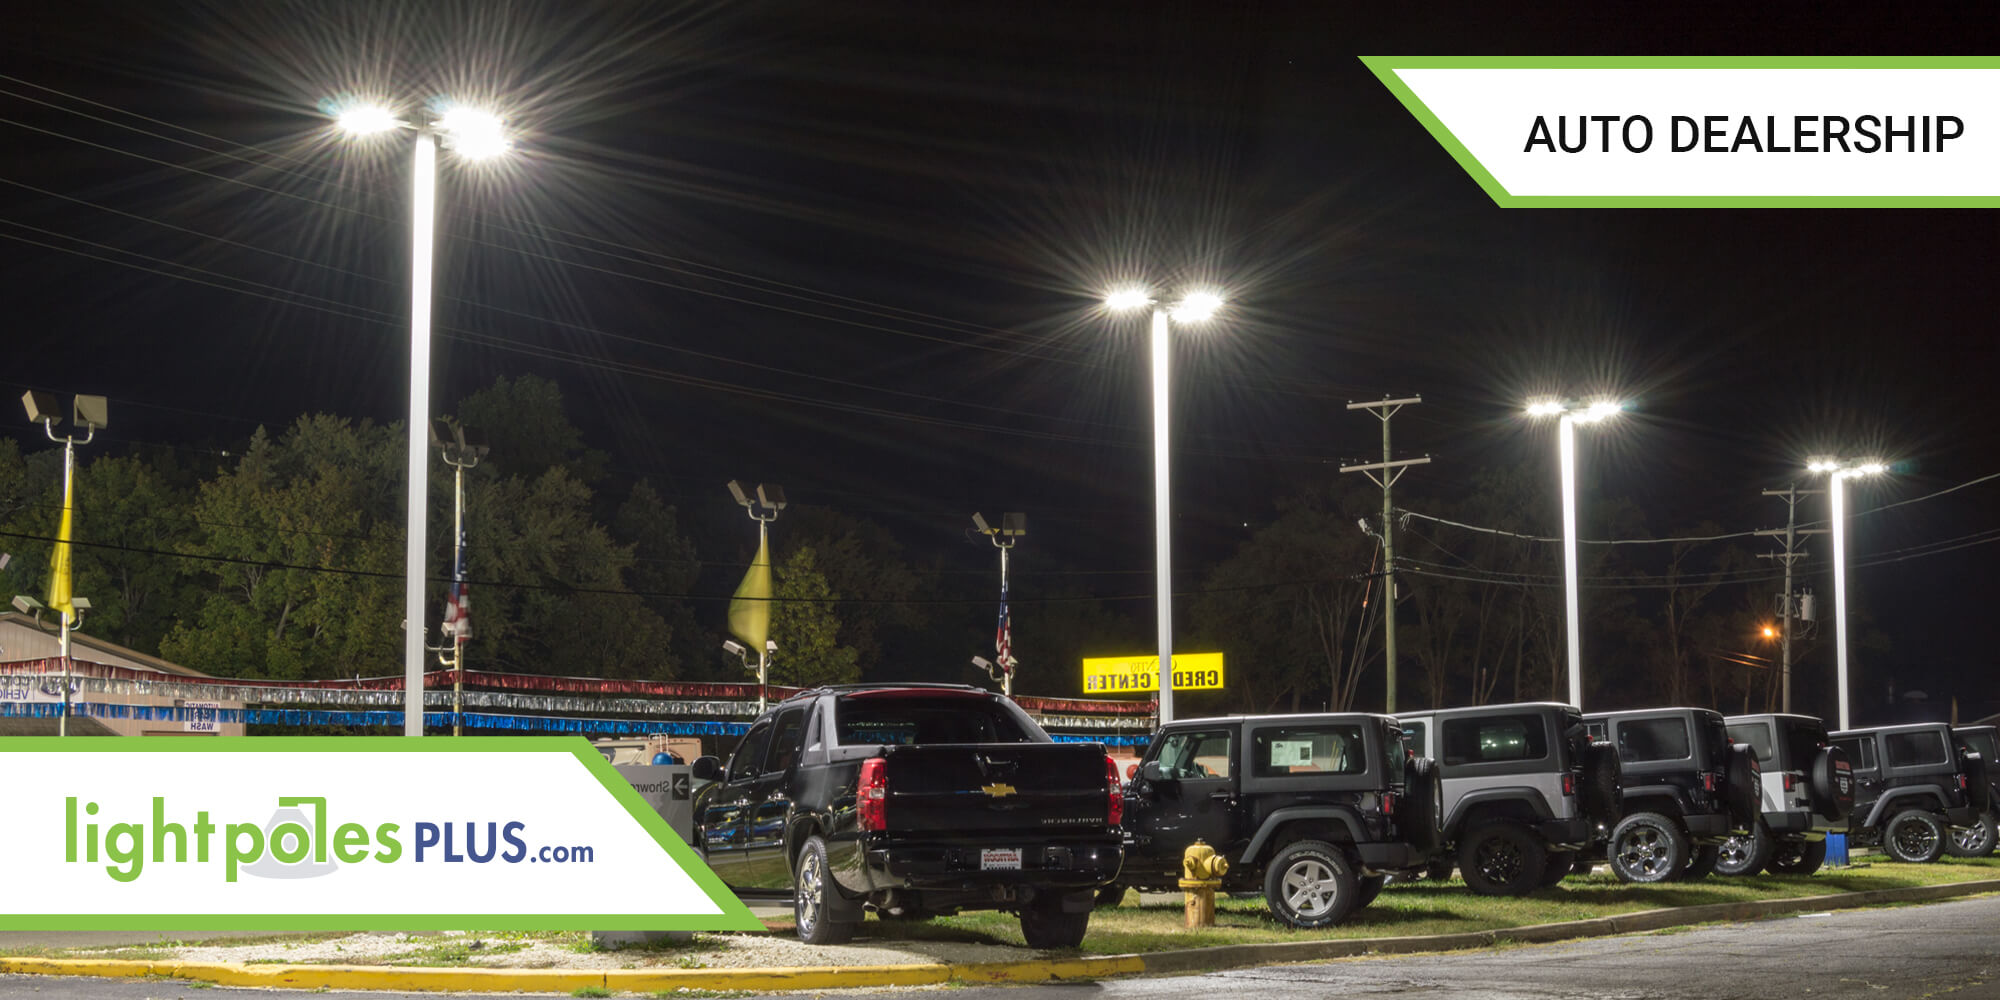 Parking Lot LED Lighting and Light Pole Project